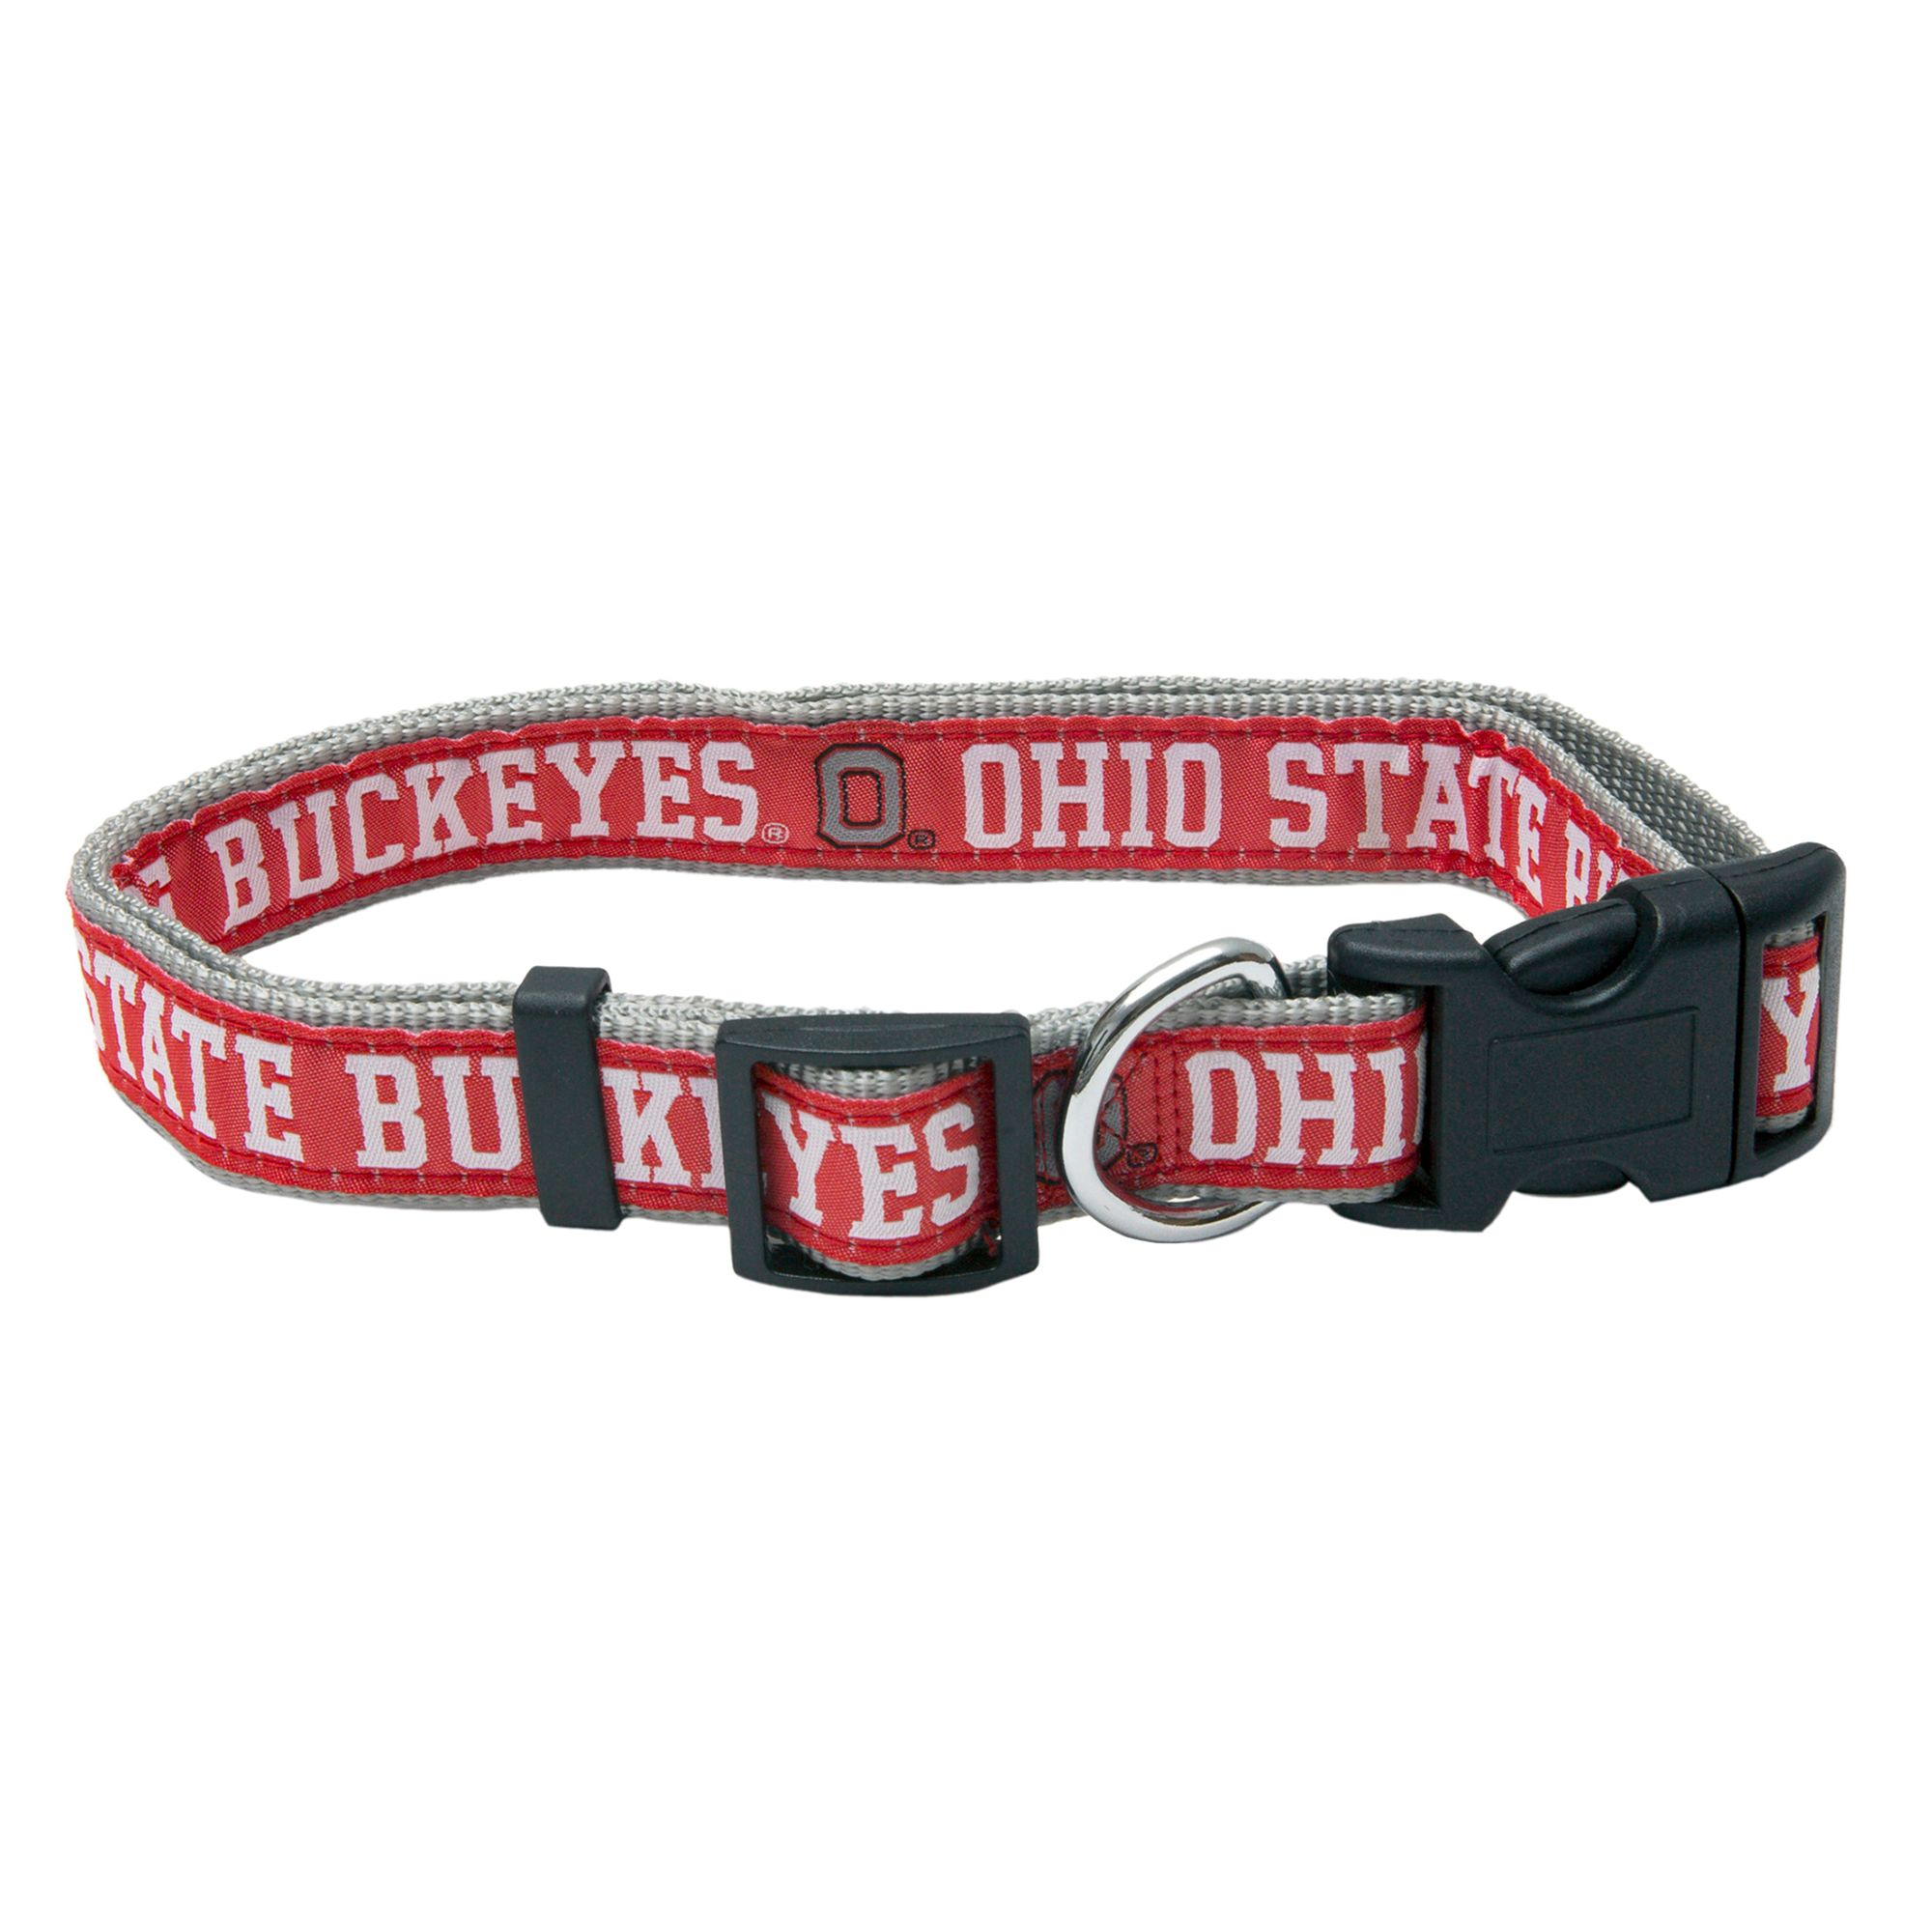 Ohio State University Buckeyes Ncaa Collar size: Small, Red, Pets First 5217732